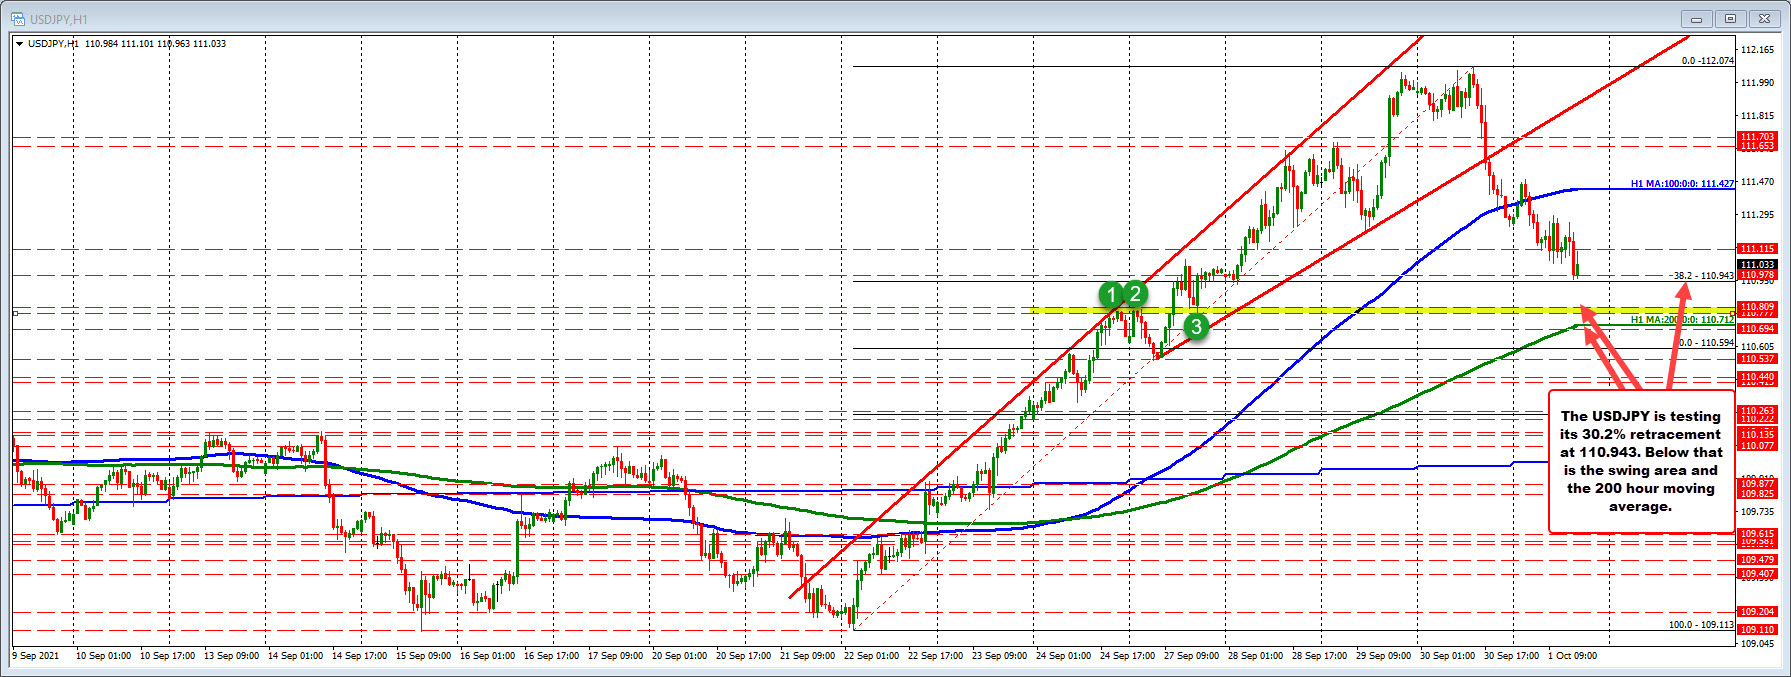 Trading away from its 100 hour moving average, but still above its 200 hour moving average_